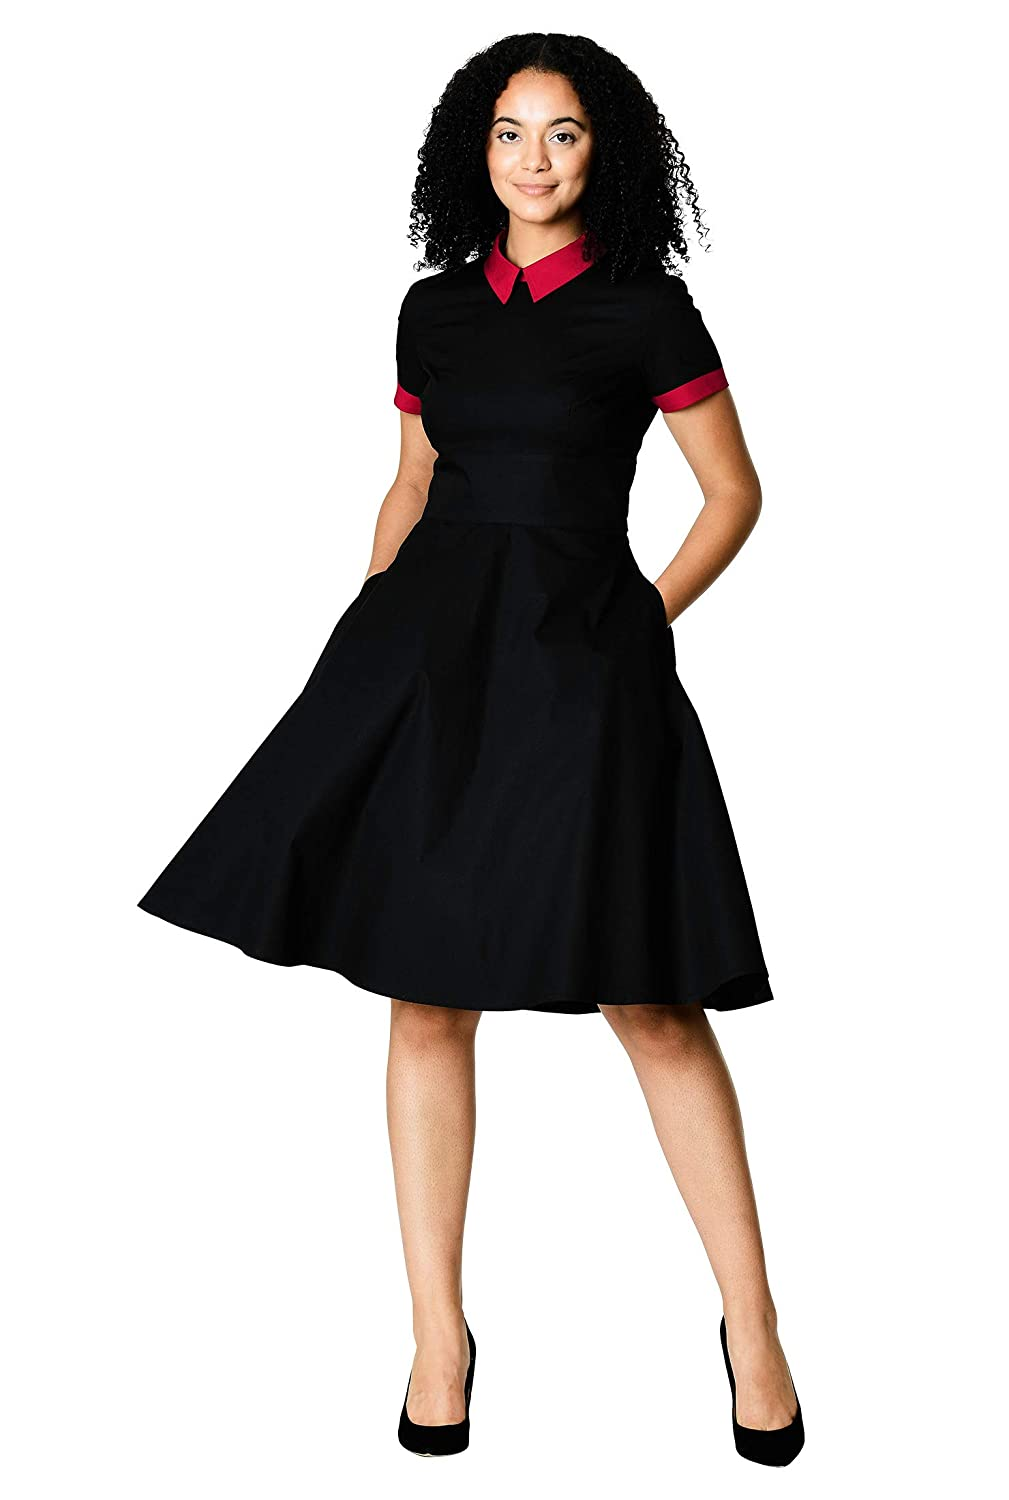 1950s Swing Dresses | 50s Swing Dress eShakti Womens Contrast Collar Cotton poplin Dress $59.95 AT vintagedancer.com